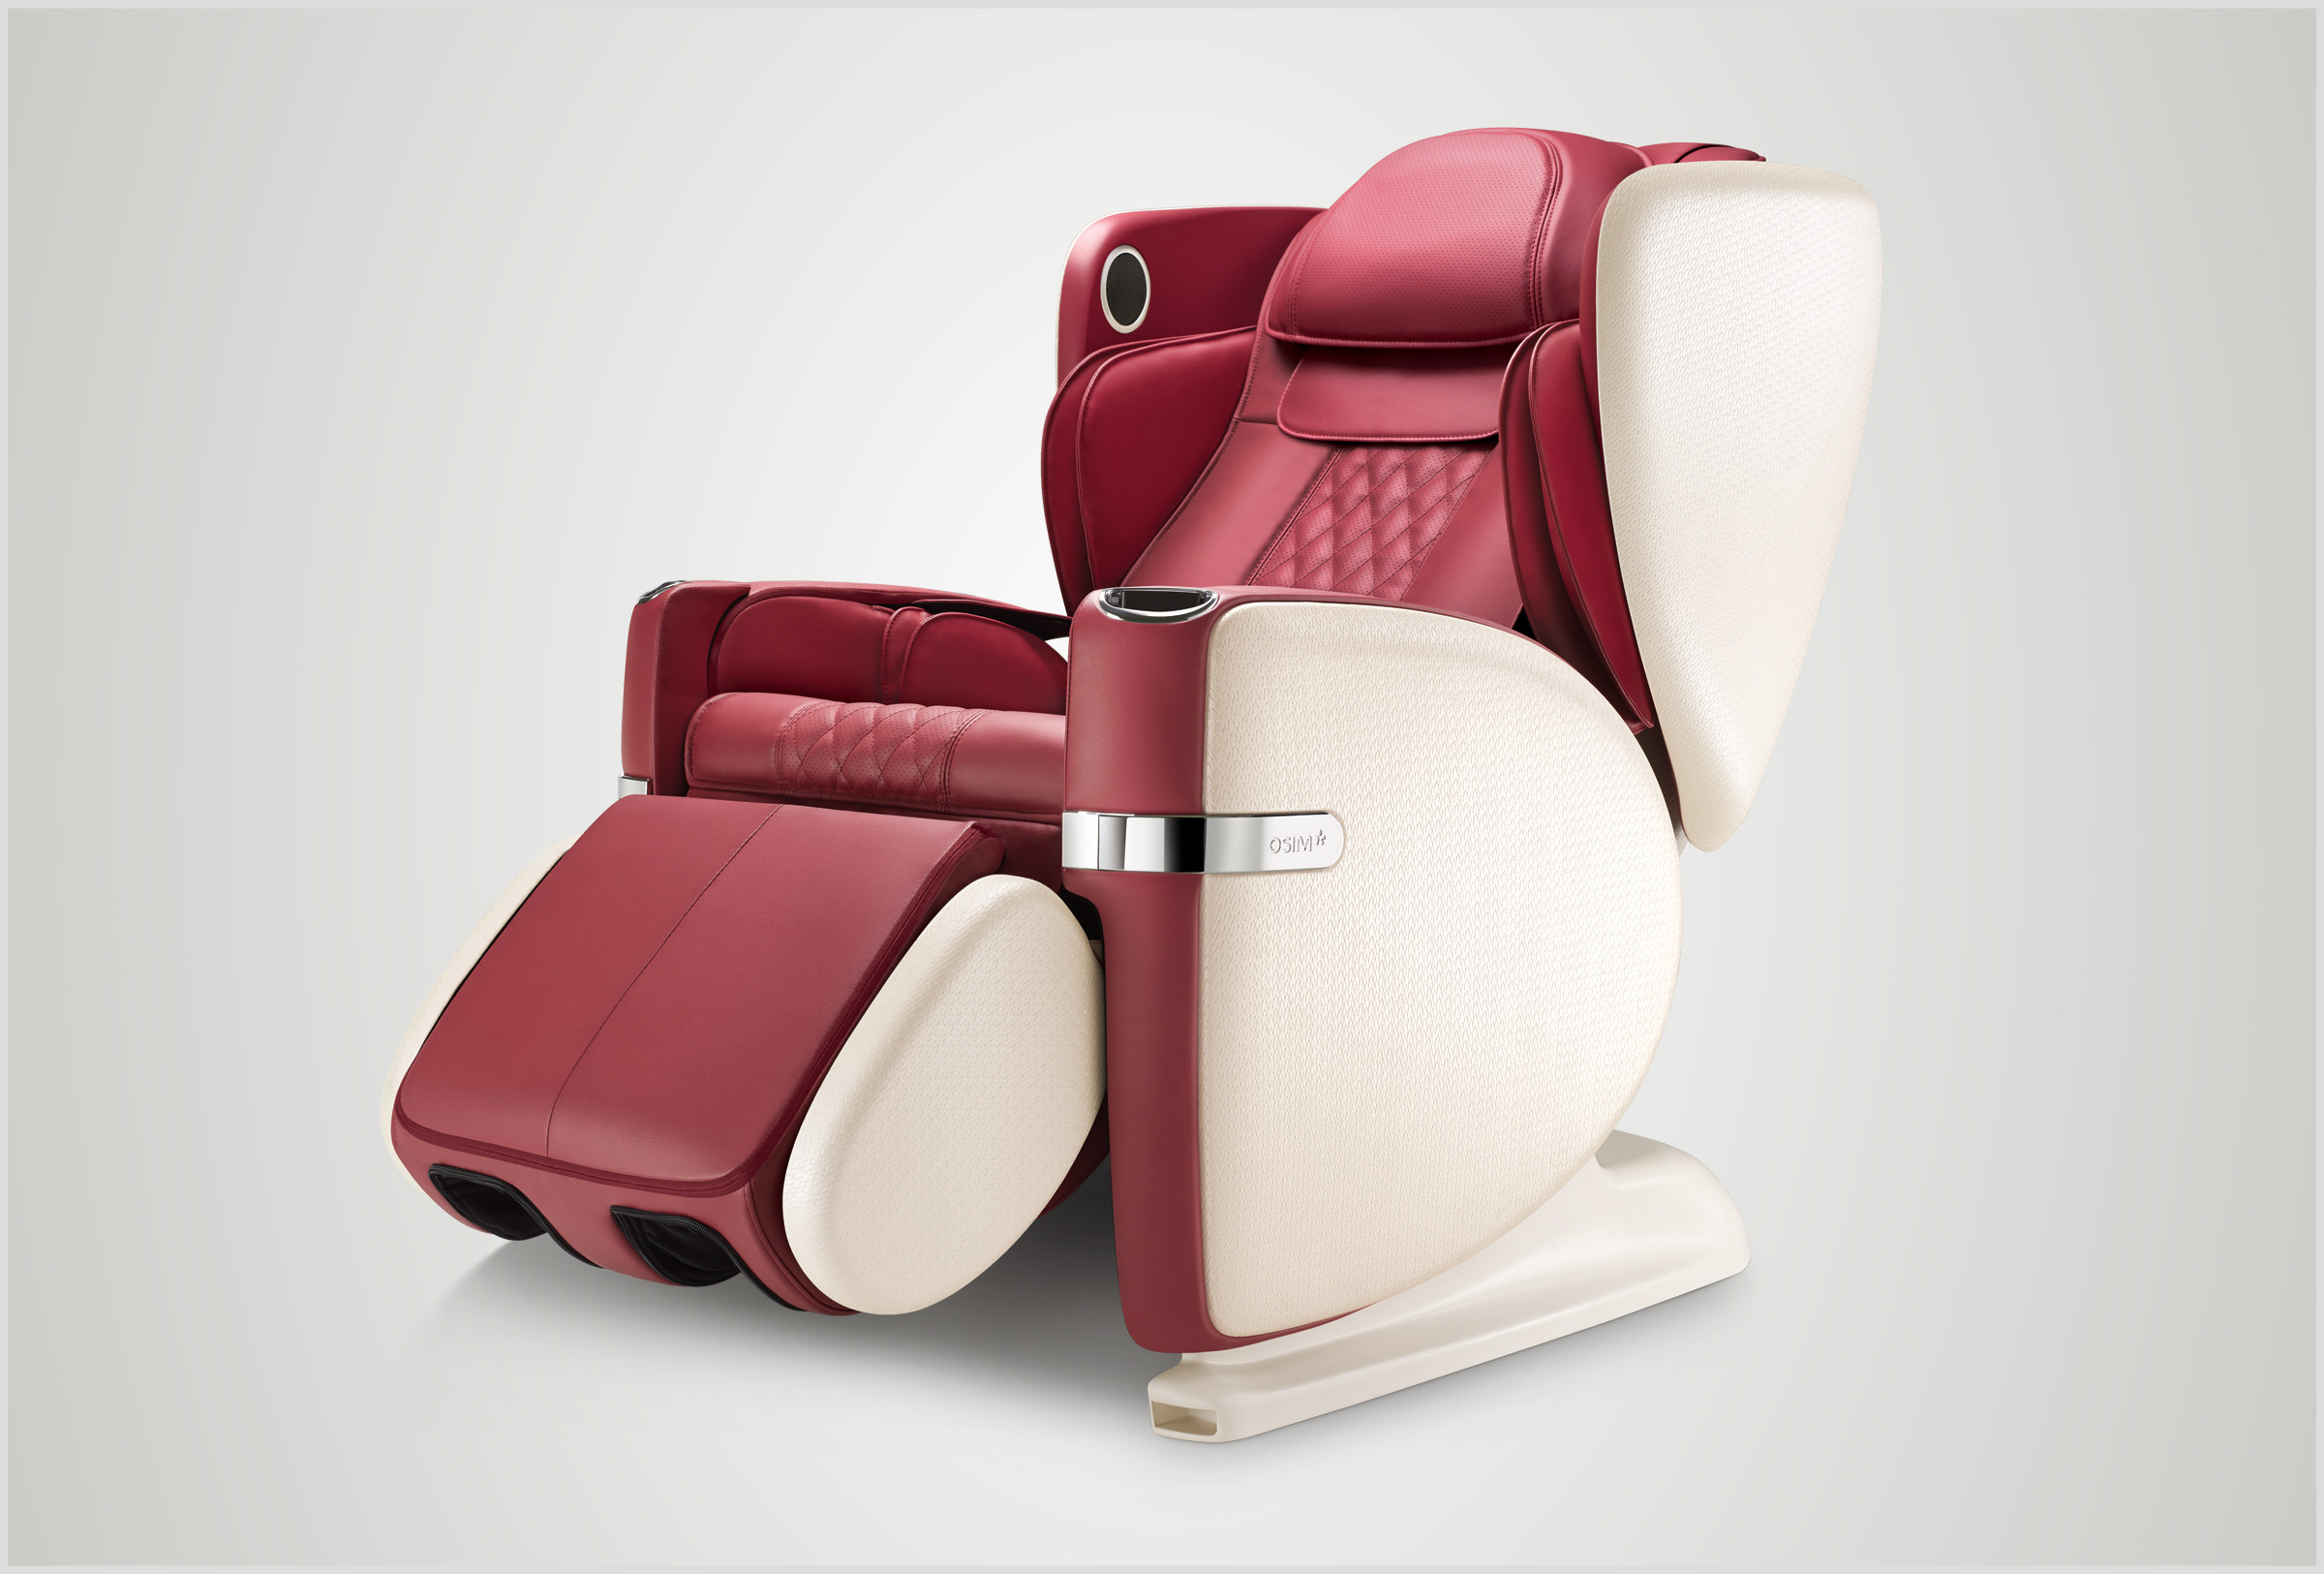 OSIM uLove Massage Chair Free UK Delivery and Free Gift